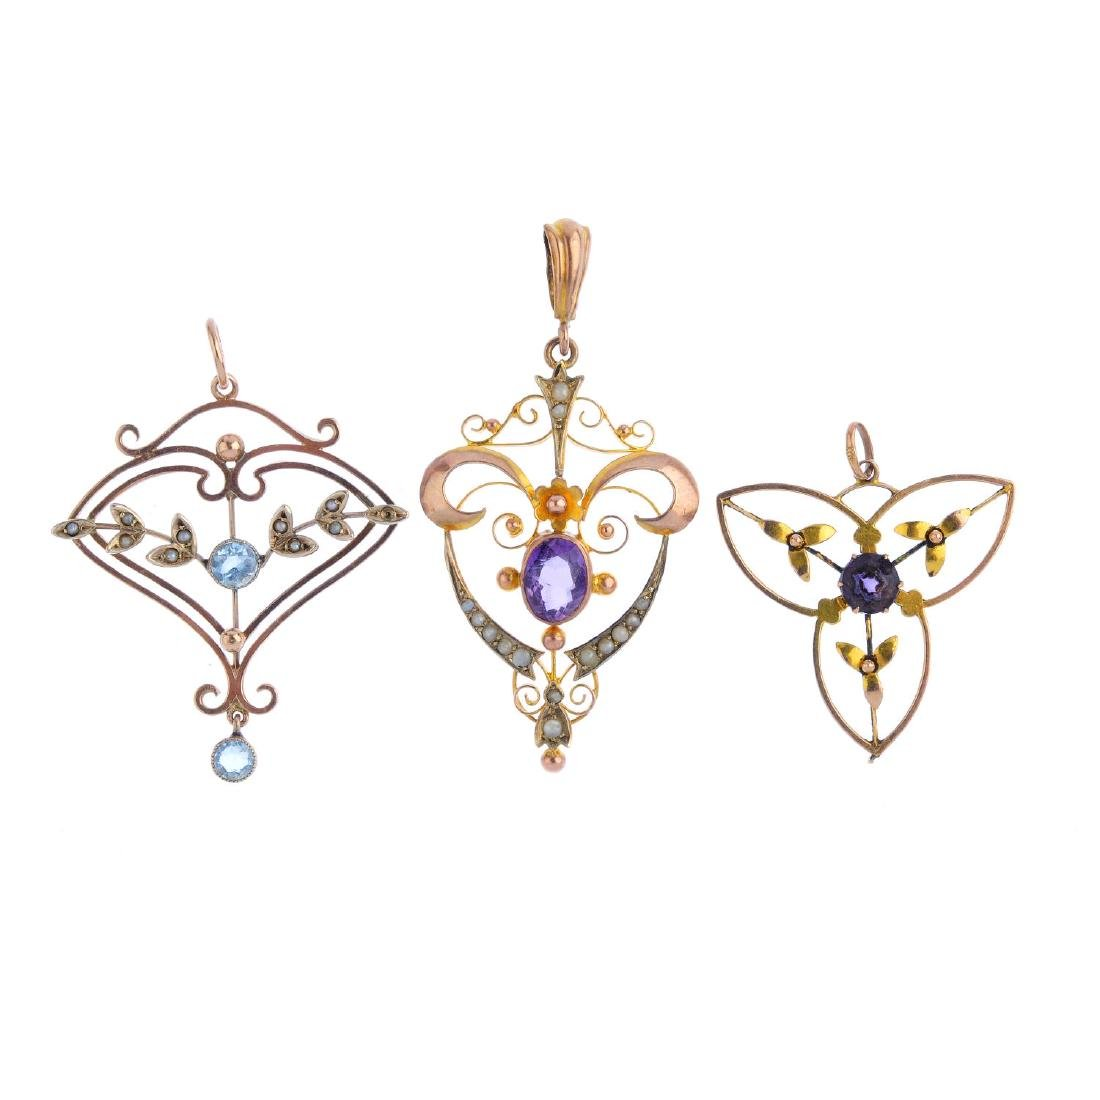 Three early 20th century gem-set pendants. To include